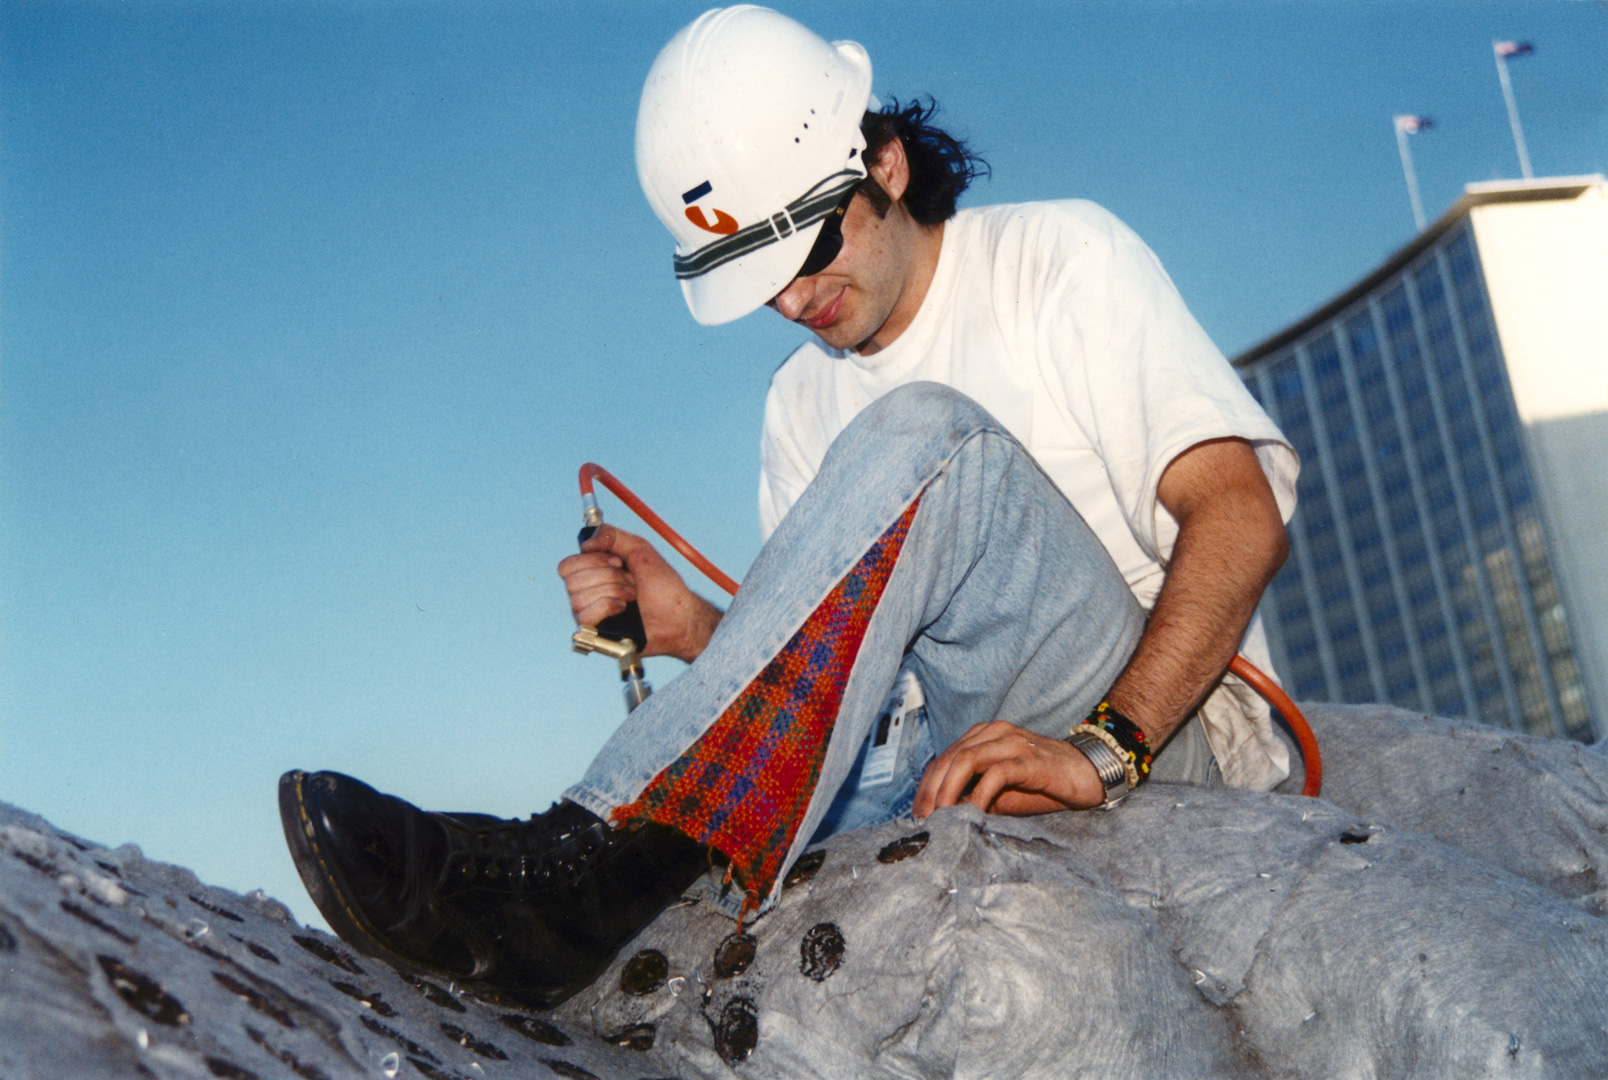 LOVE, JOY AND AN AUTOGRAPHED HARD HAT